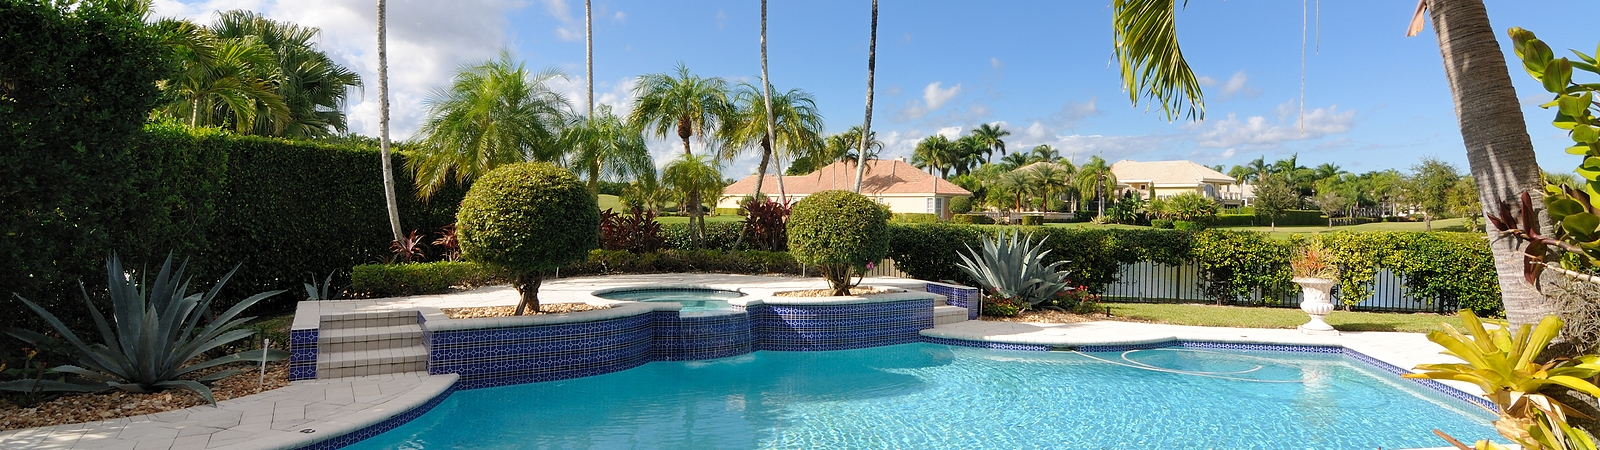 Ocala pool homes for sale ocala real estate source for Houses for sale pool